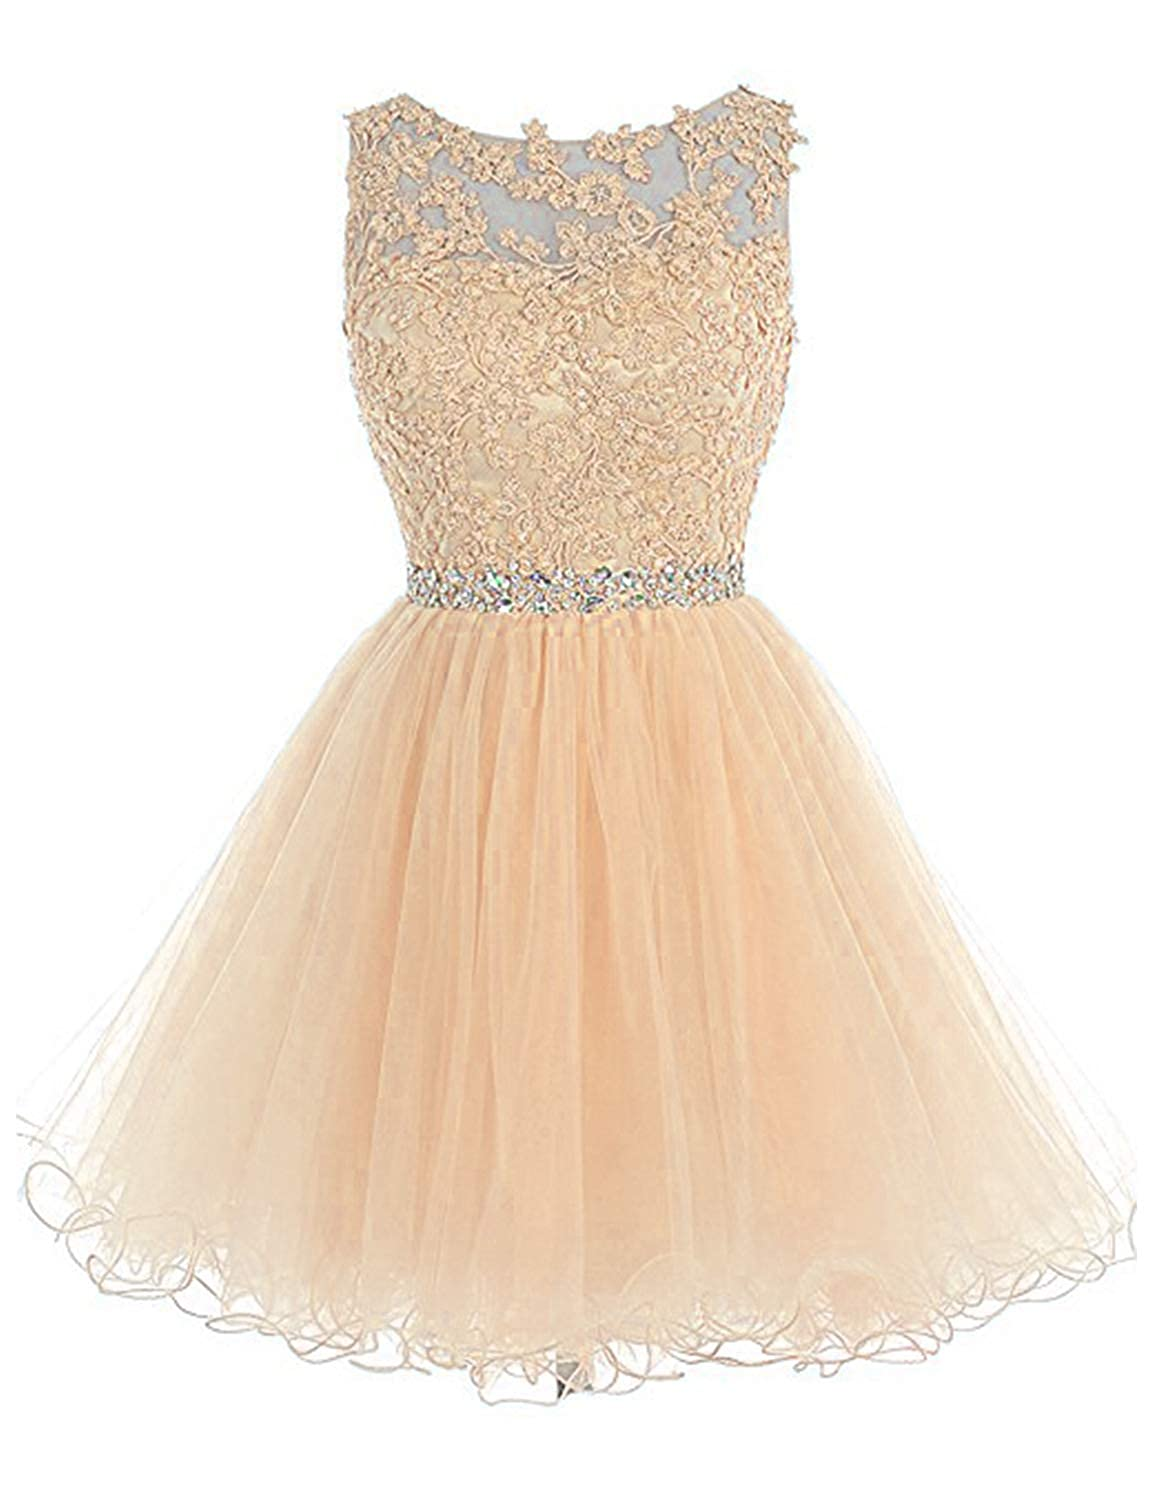 0 Light Champagne Vimans Women's Short Tulle Homecoming Dresses 2018 Knee Length Lace Prom Gowns Dress448